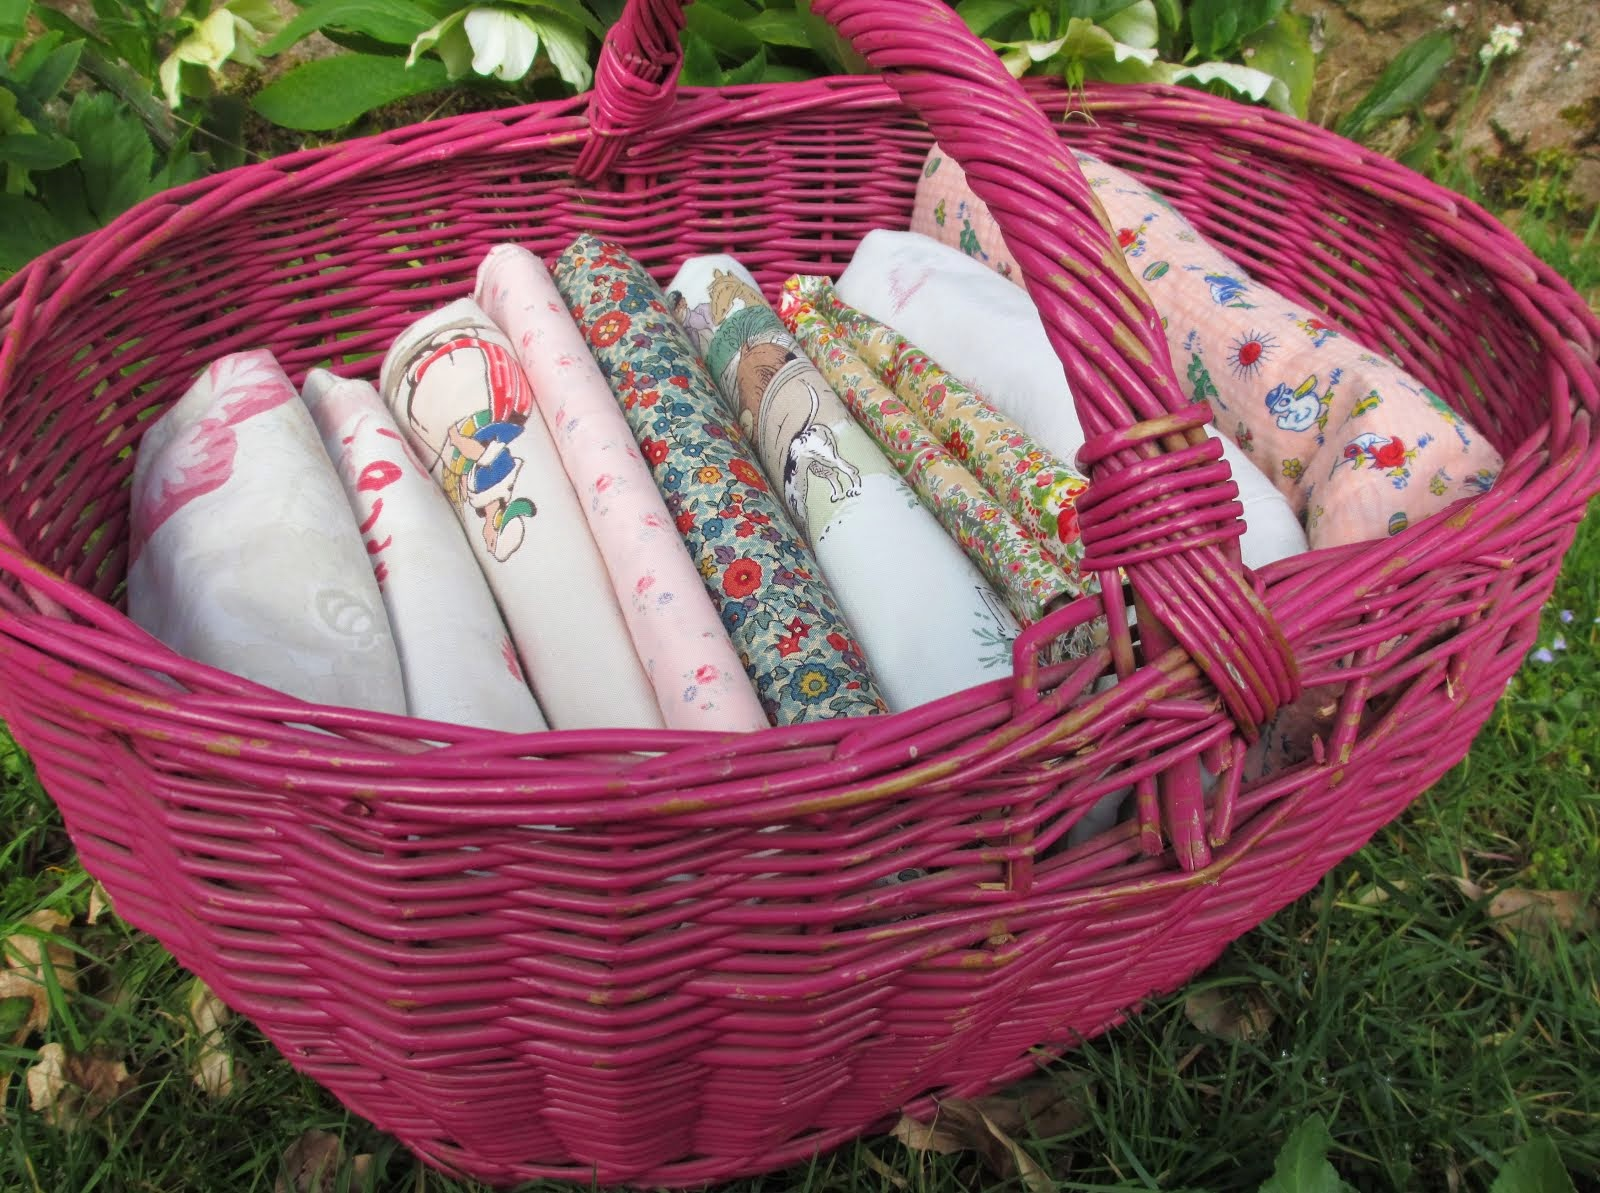 Vintage Textiles for sale in the Washerwoman's etsy shop